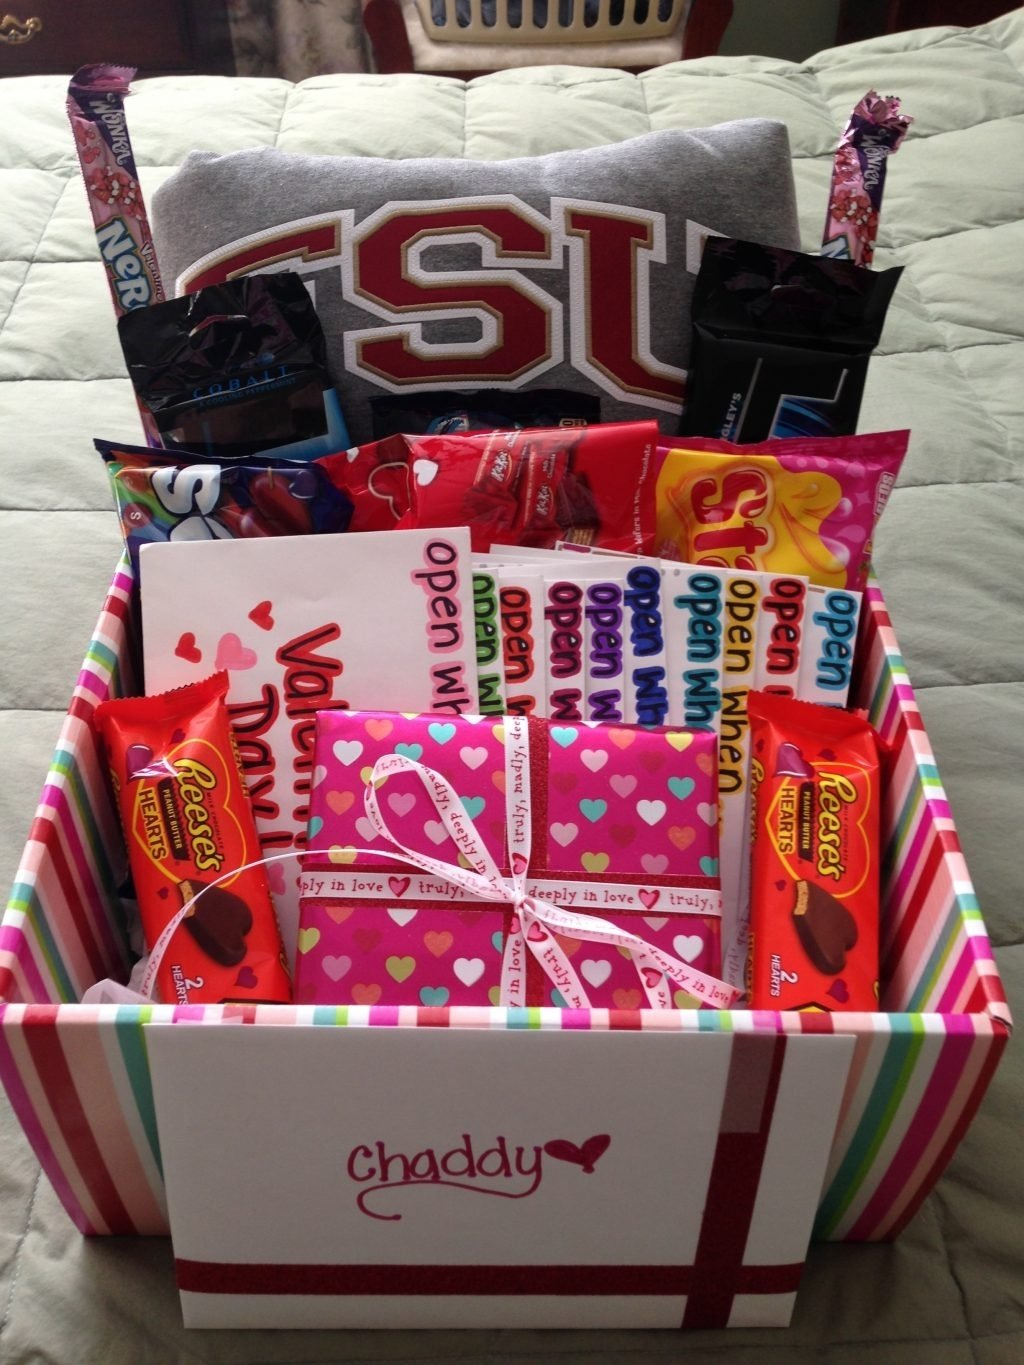 10 Lovable What To Get A Guy For Valentines Day Ideas good valentines day presents for him happy valentines day 2018 10 2021